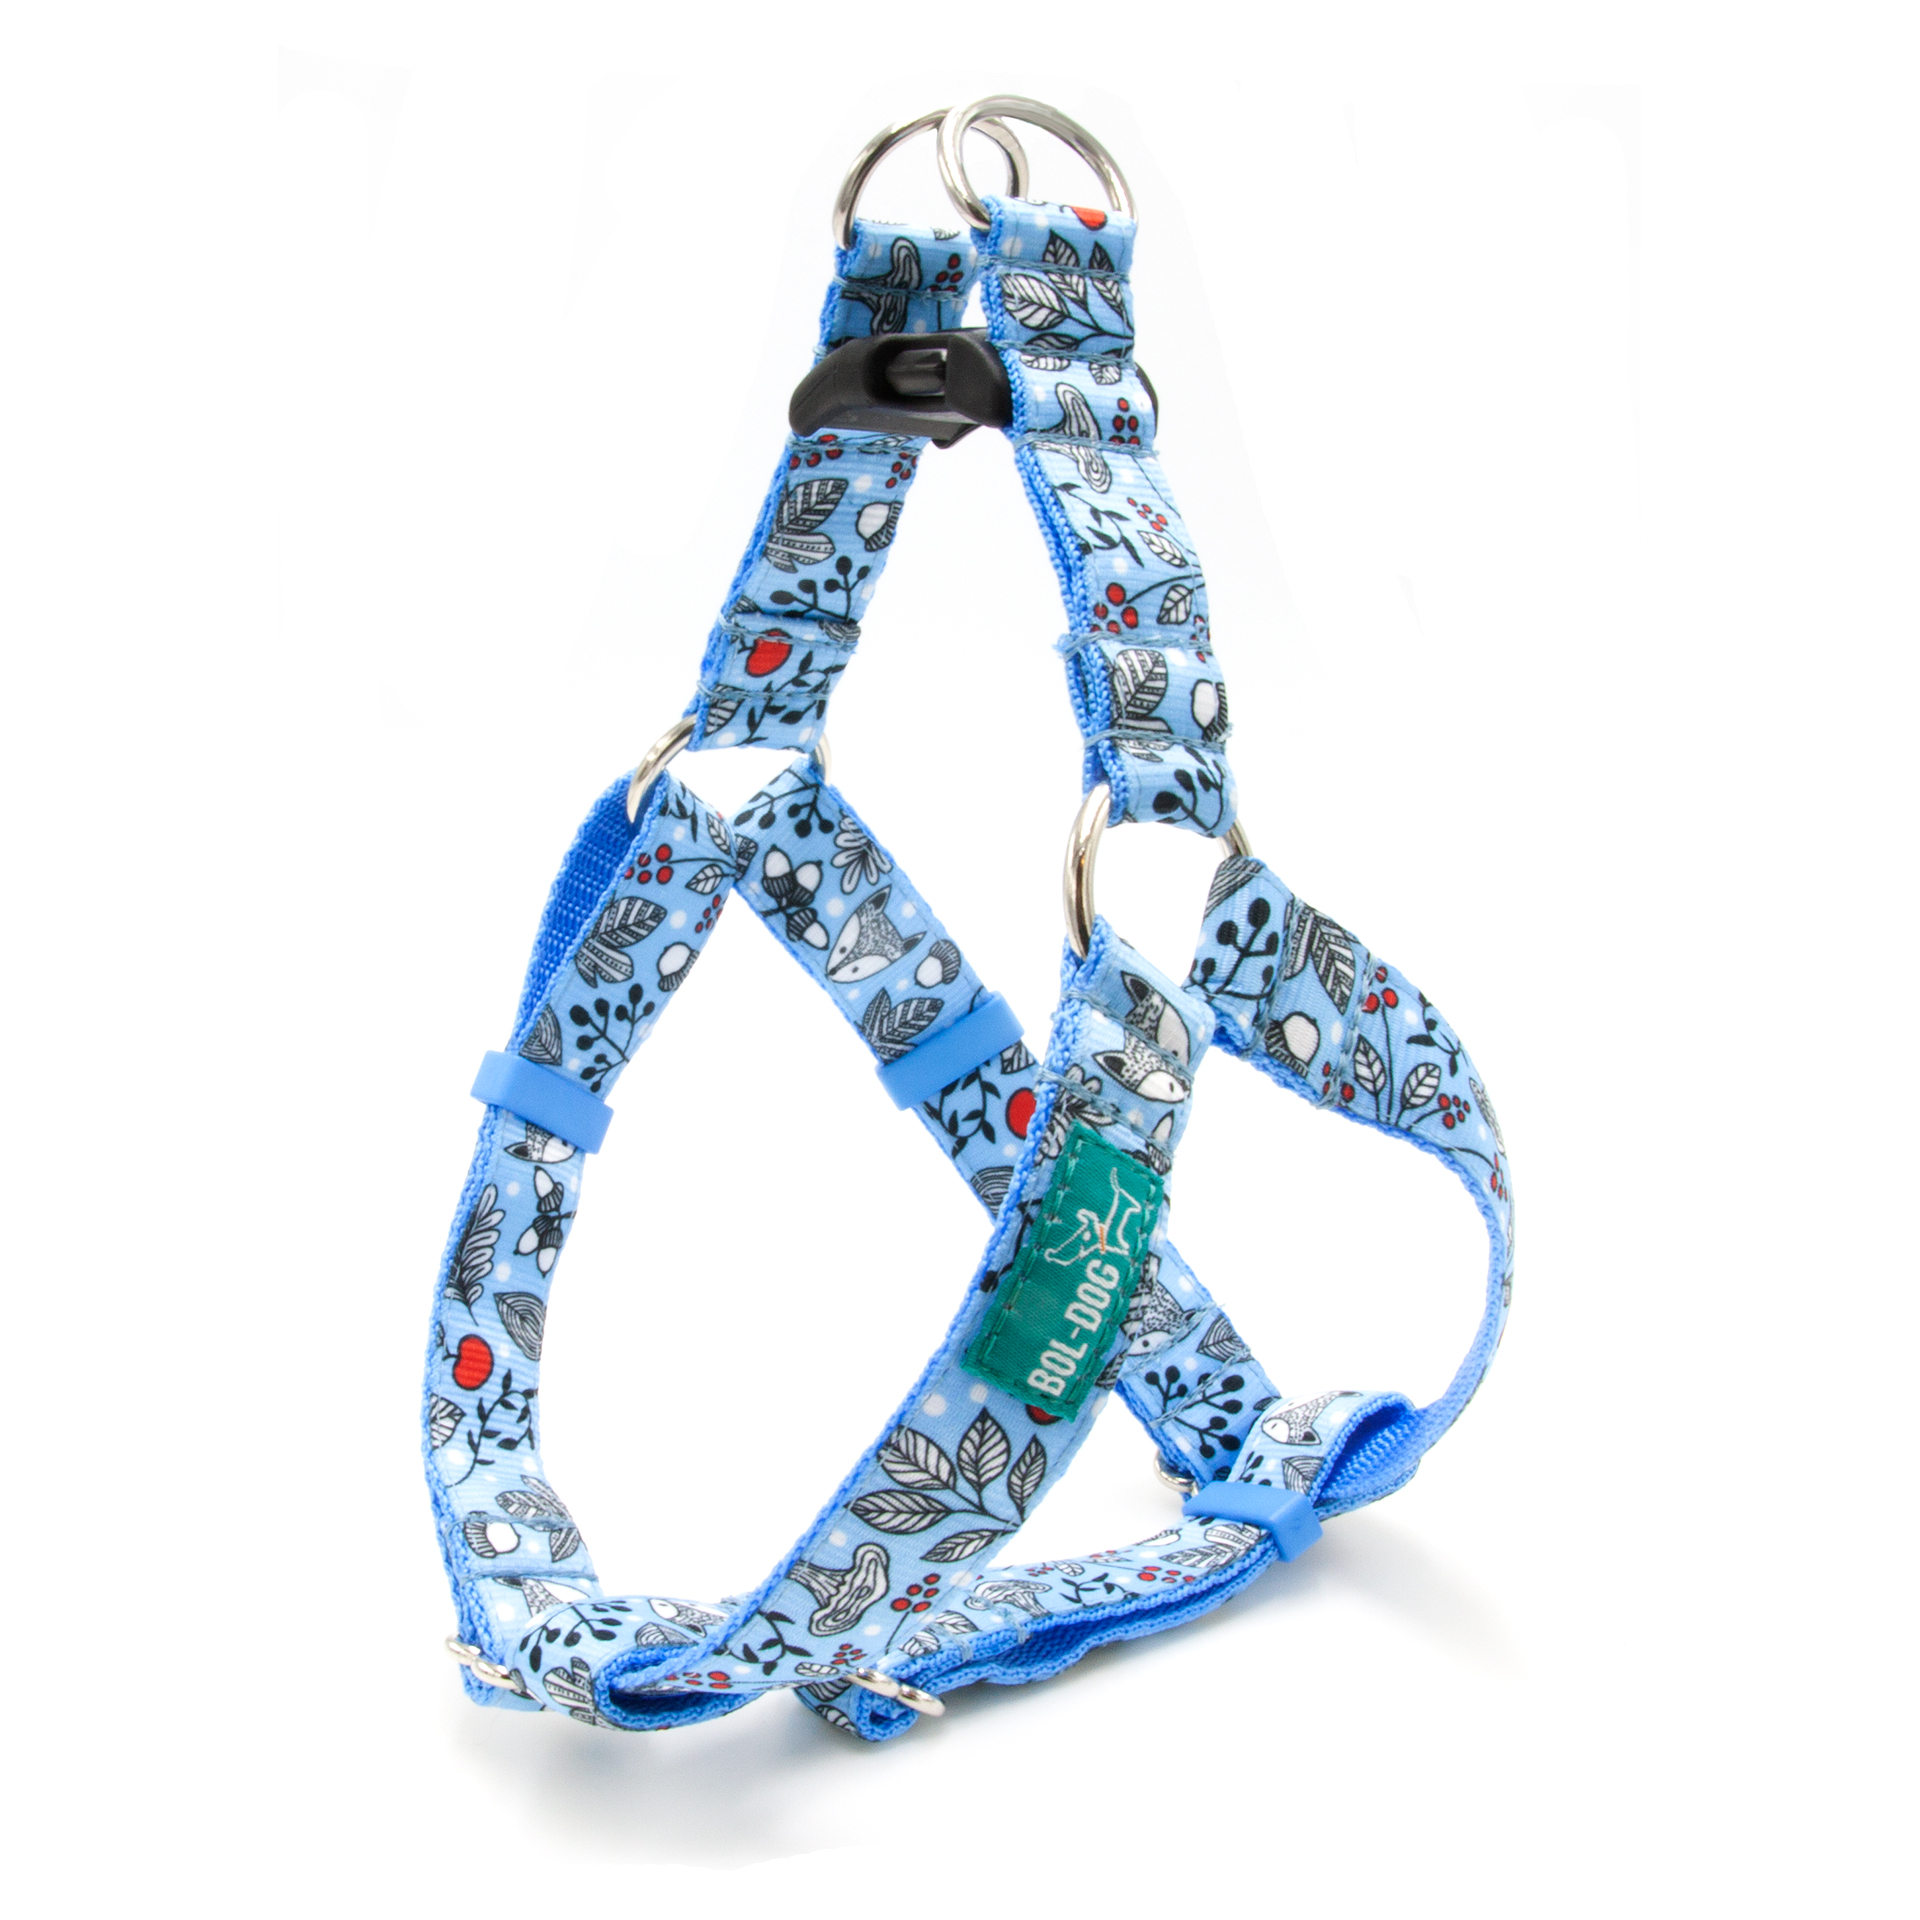 Hoar dog harness